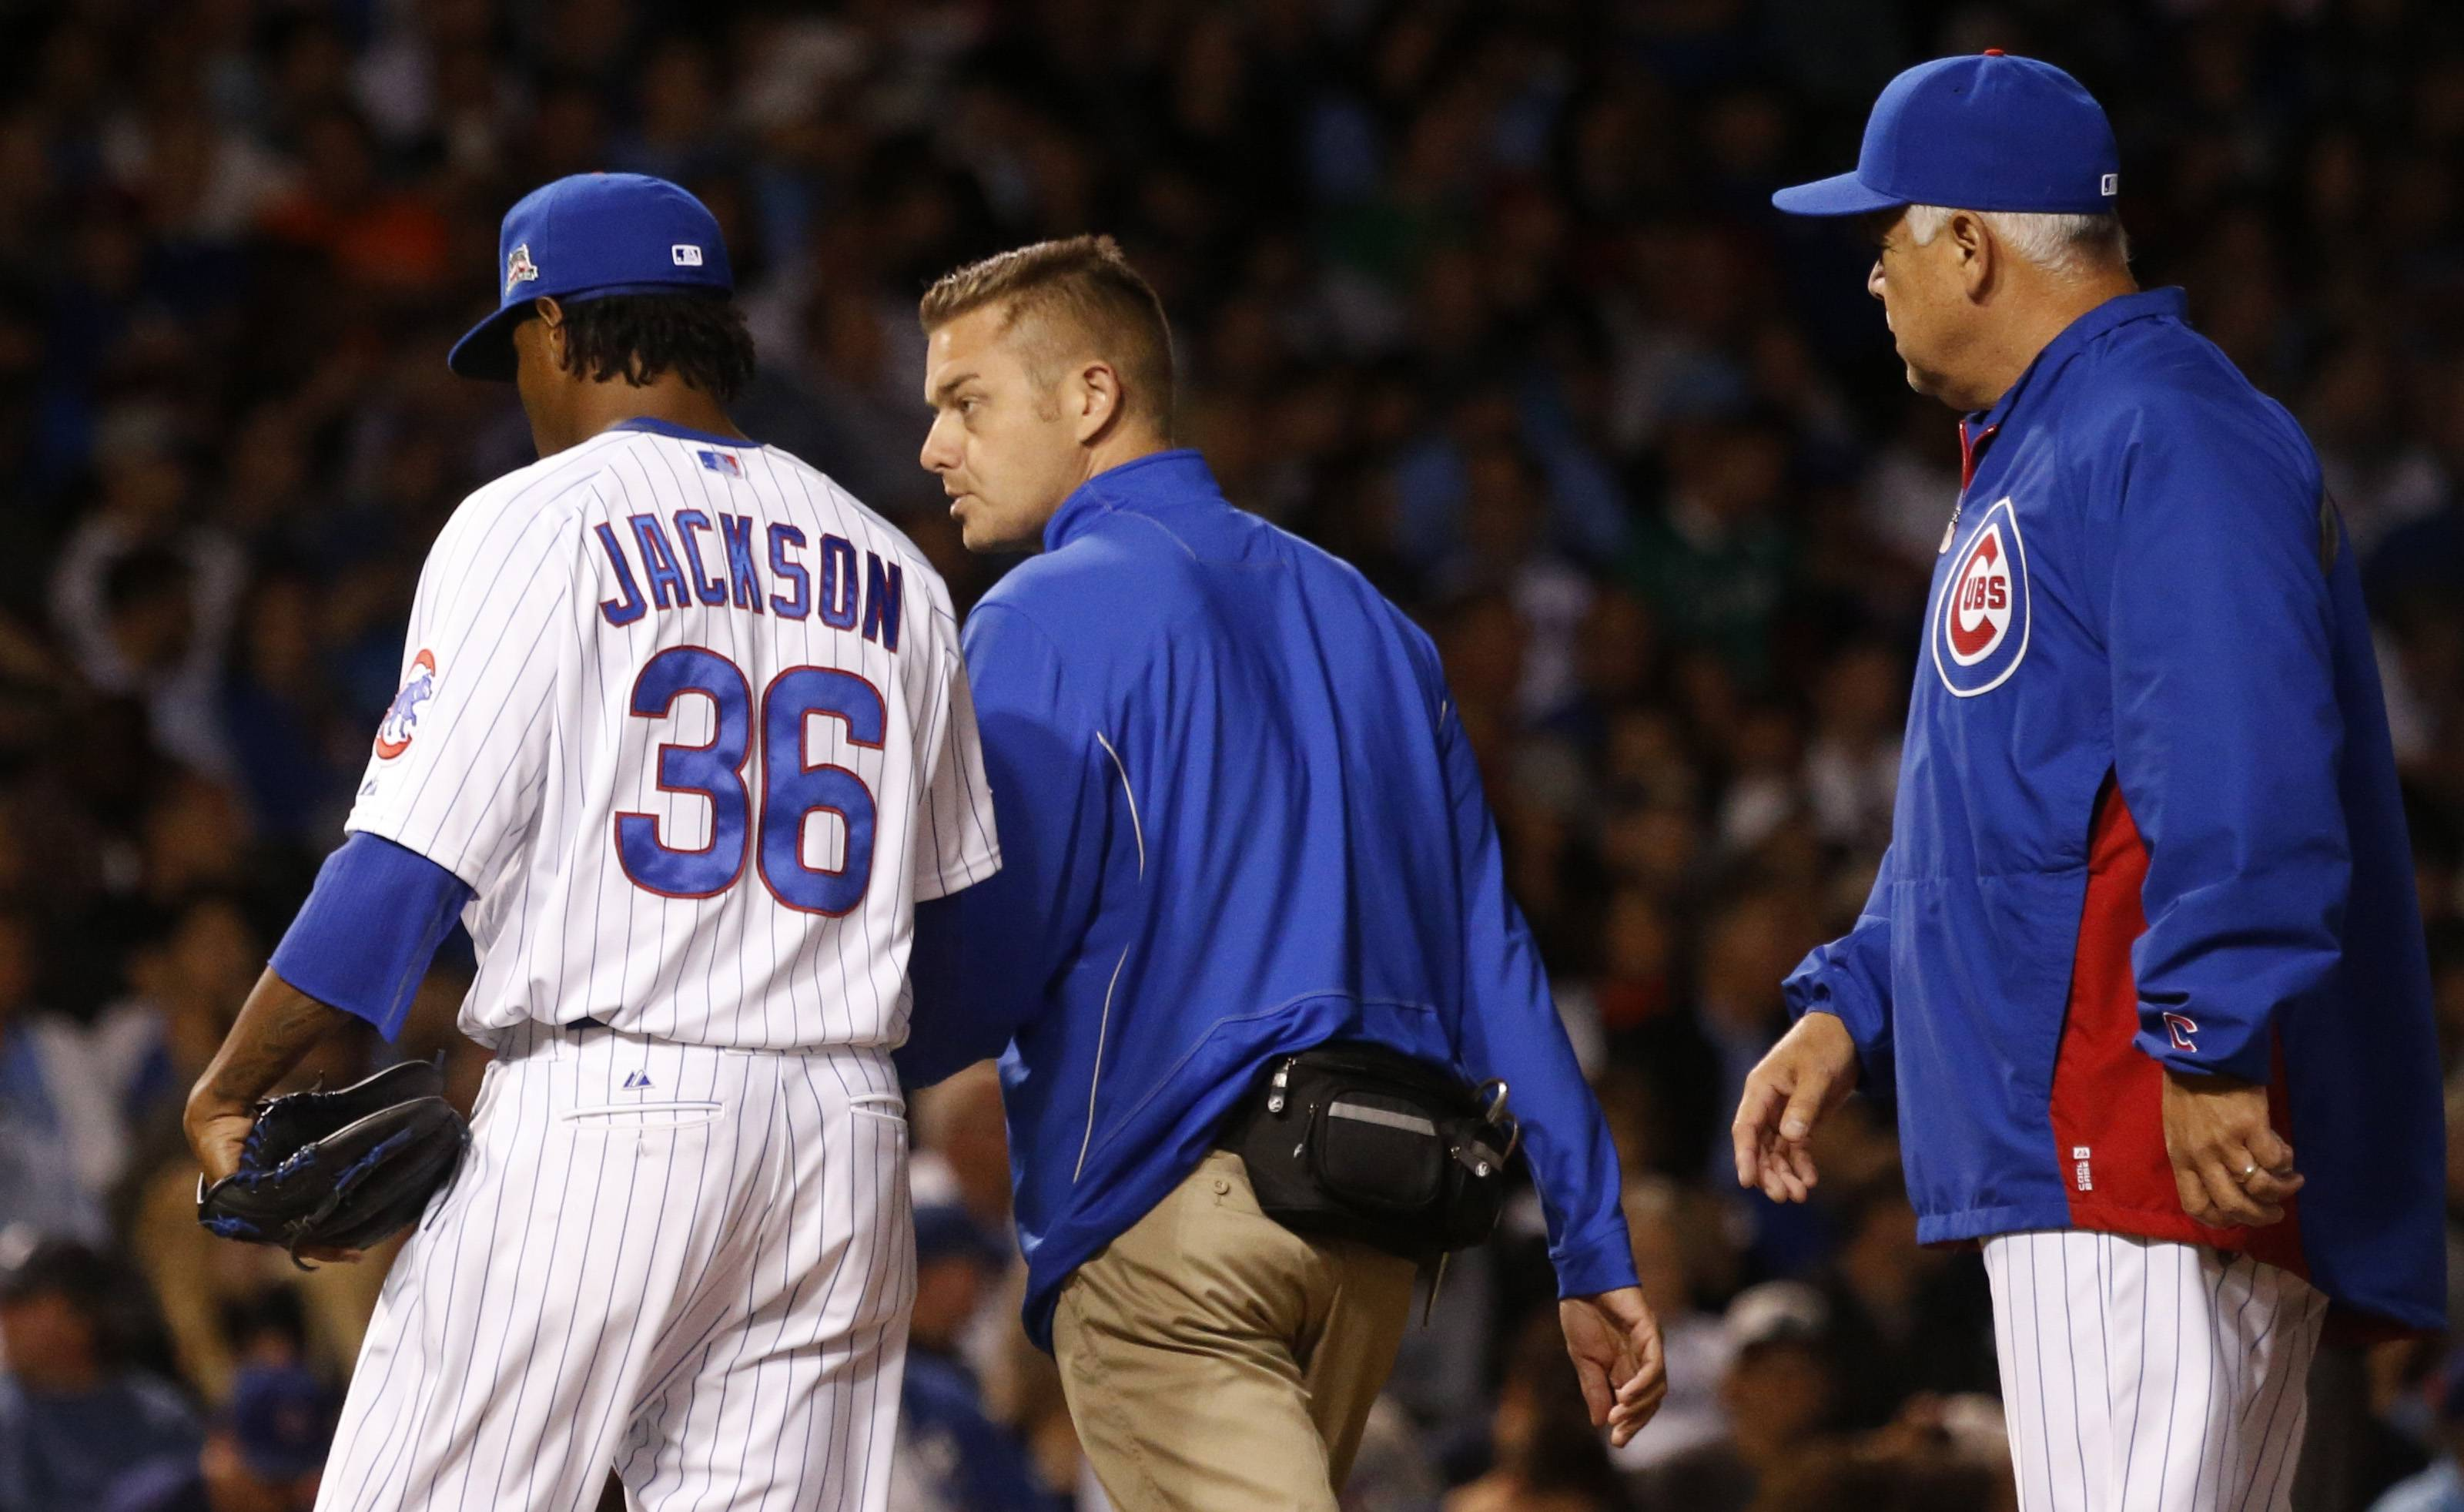 Cubs starting pitcher Edwin Jackson leaves a game as manager Rick Renteria, right, watches during the sixth inning Thursday night.